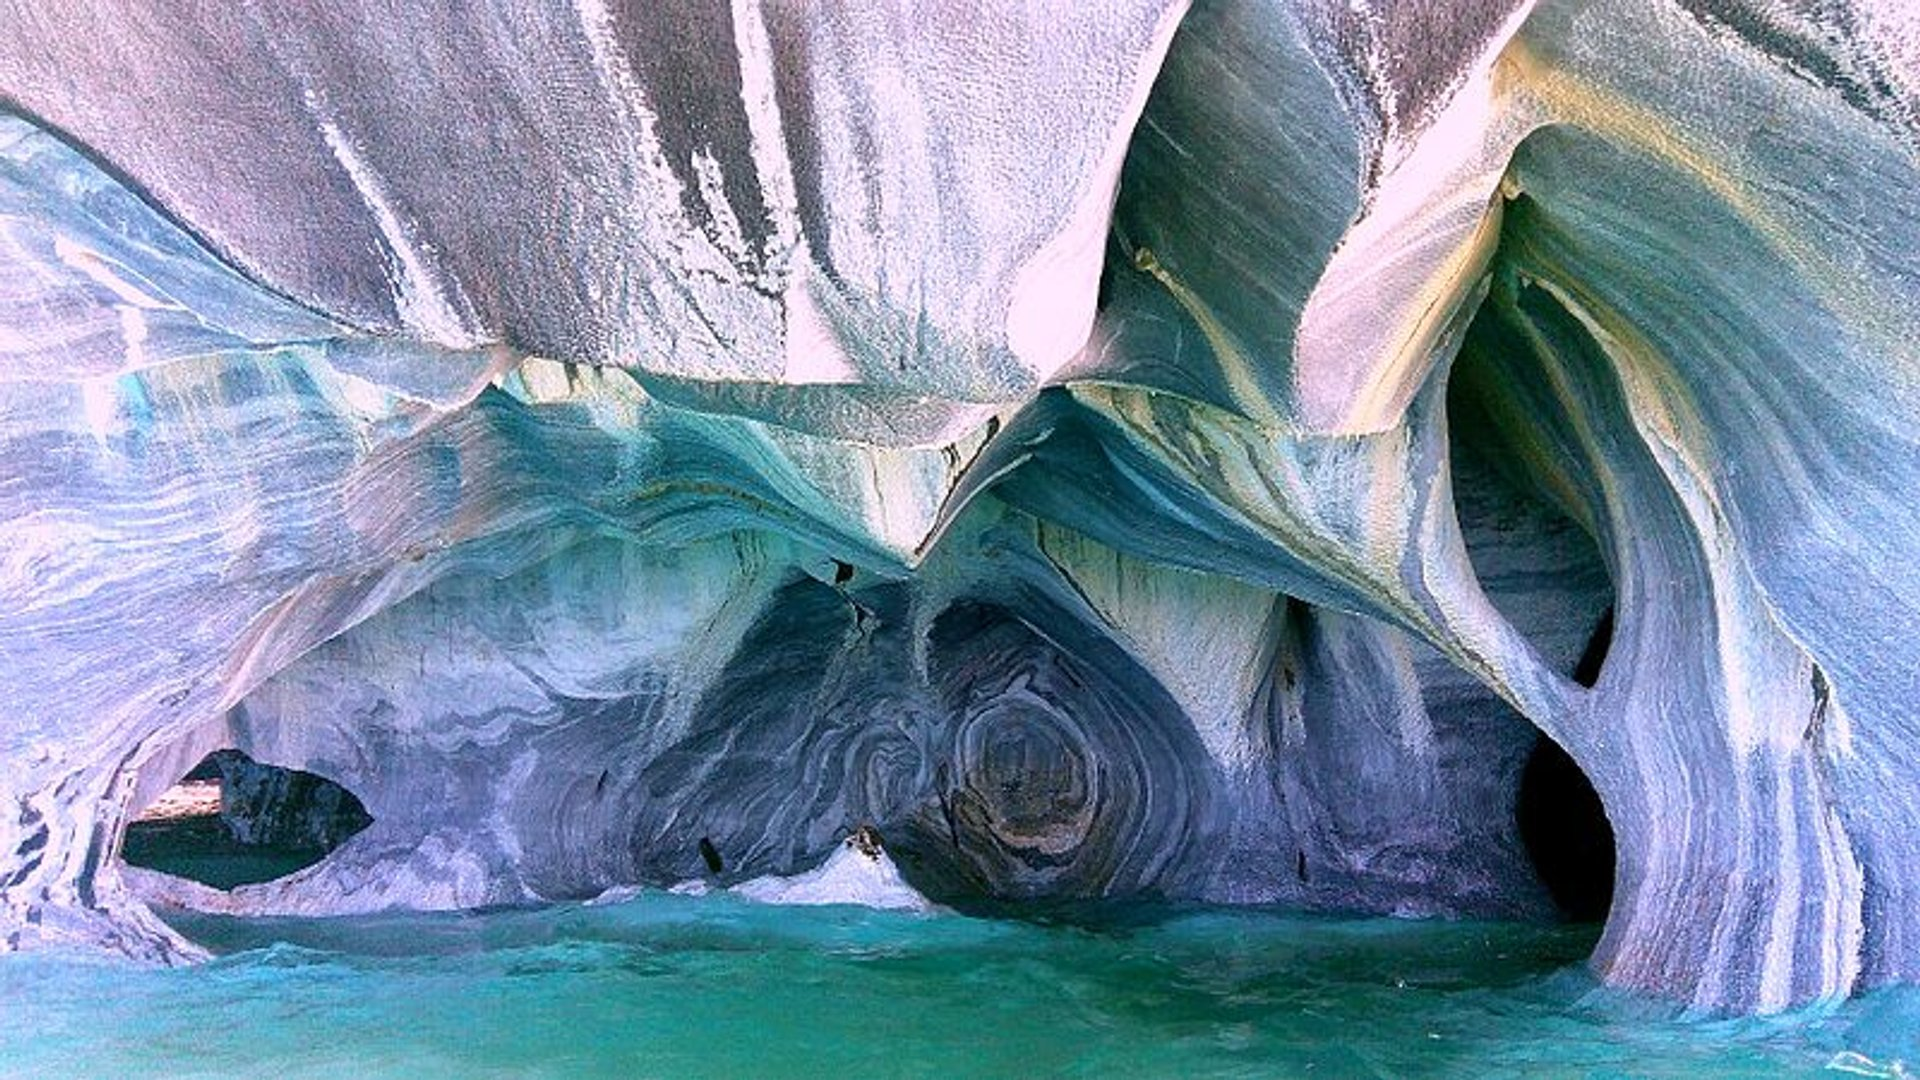 Best time for Marble Caves or Cuevas de Mármol in Chile 2020